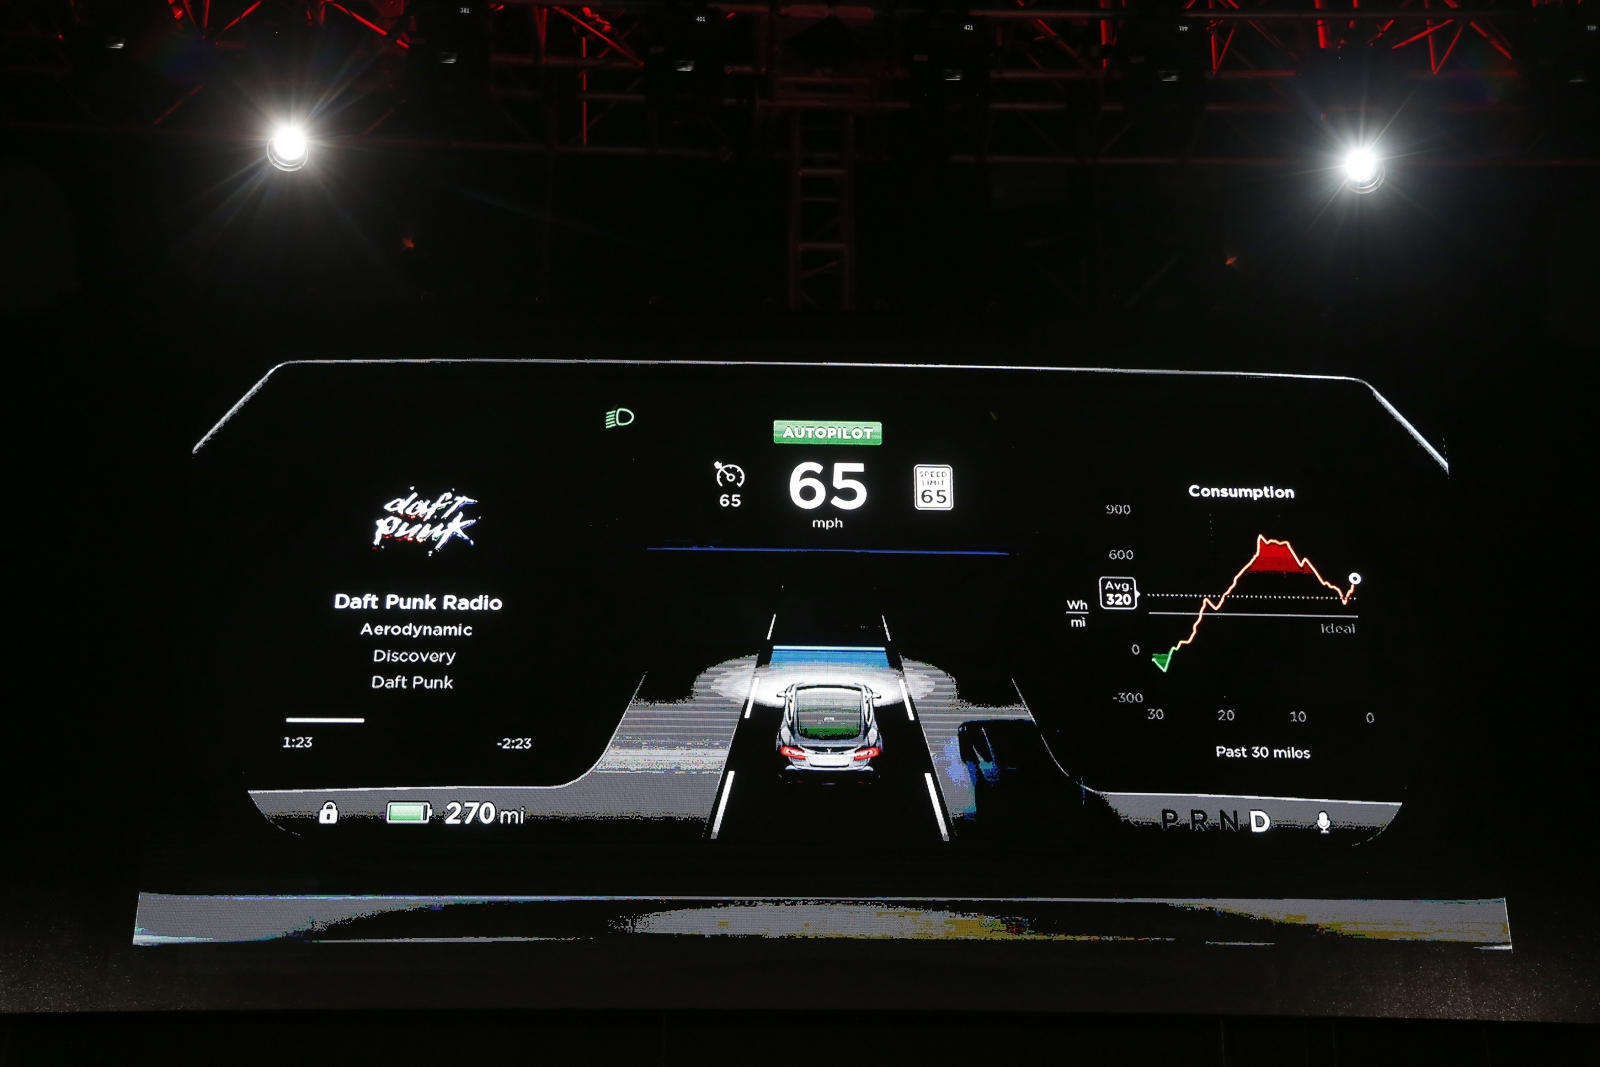 The dashboard of the Tesla Model S car with features that will allow its electric sedan to park itself and sense dangerous situations.